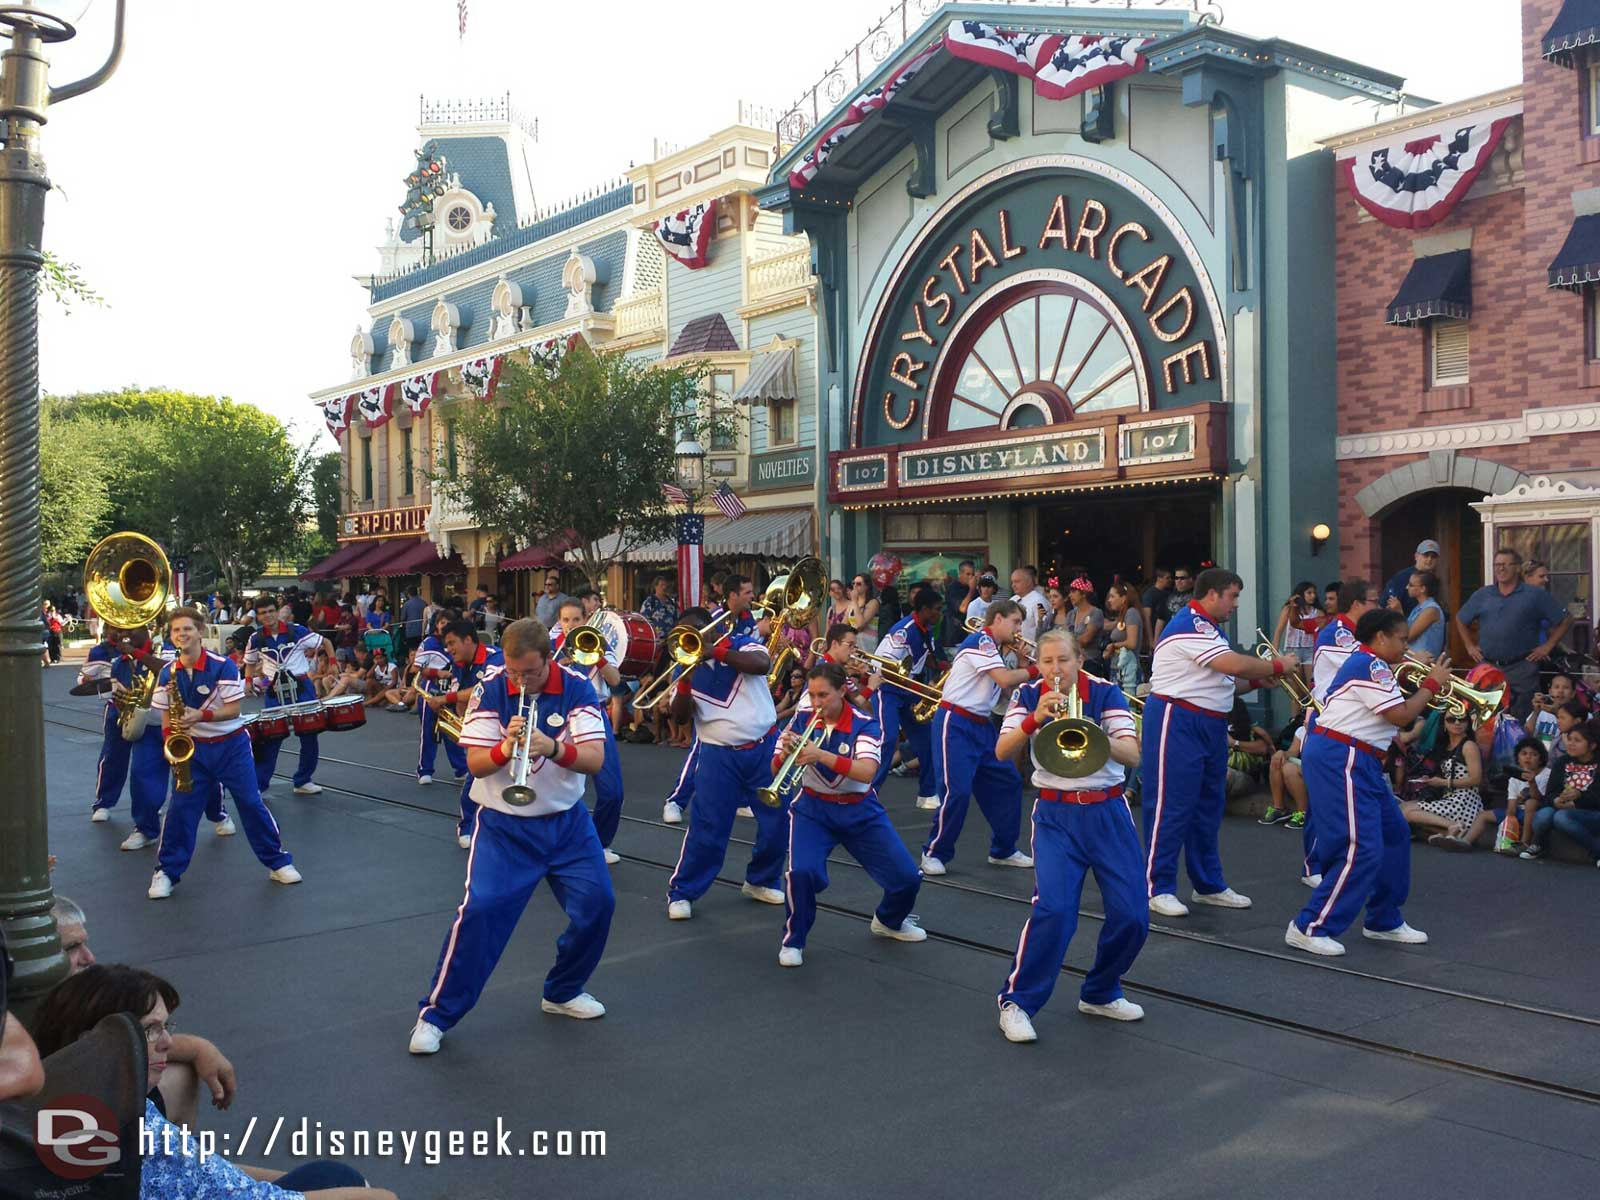 The 2014 #Disneyland All-American College Band performing before Soundsational